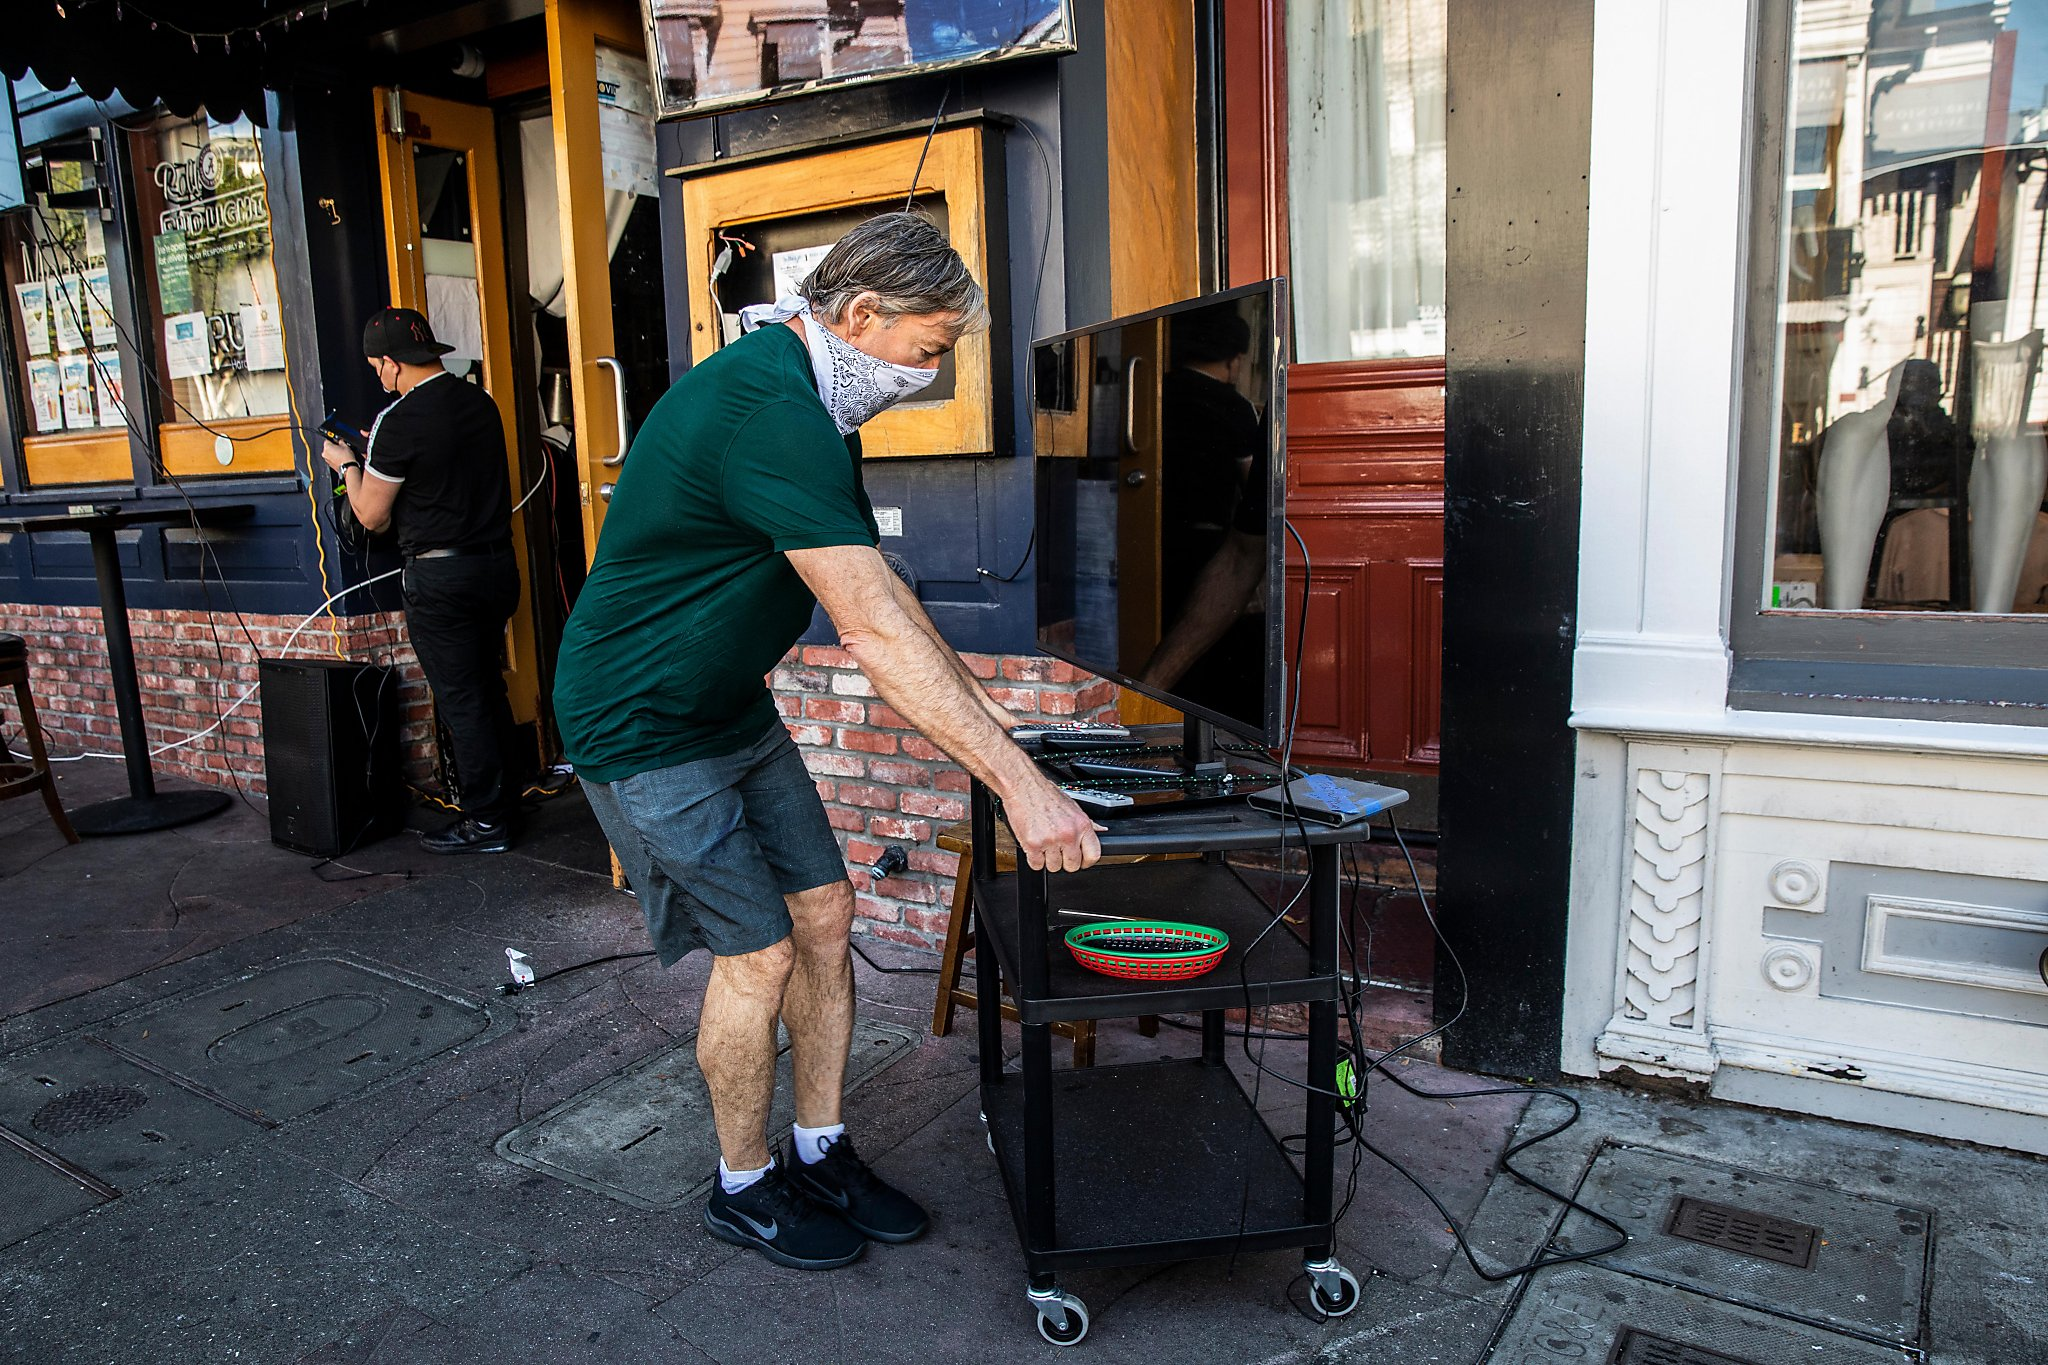 S.F.'s Super Bowl party people do their best to keep spirit going outside in small groups